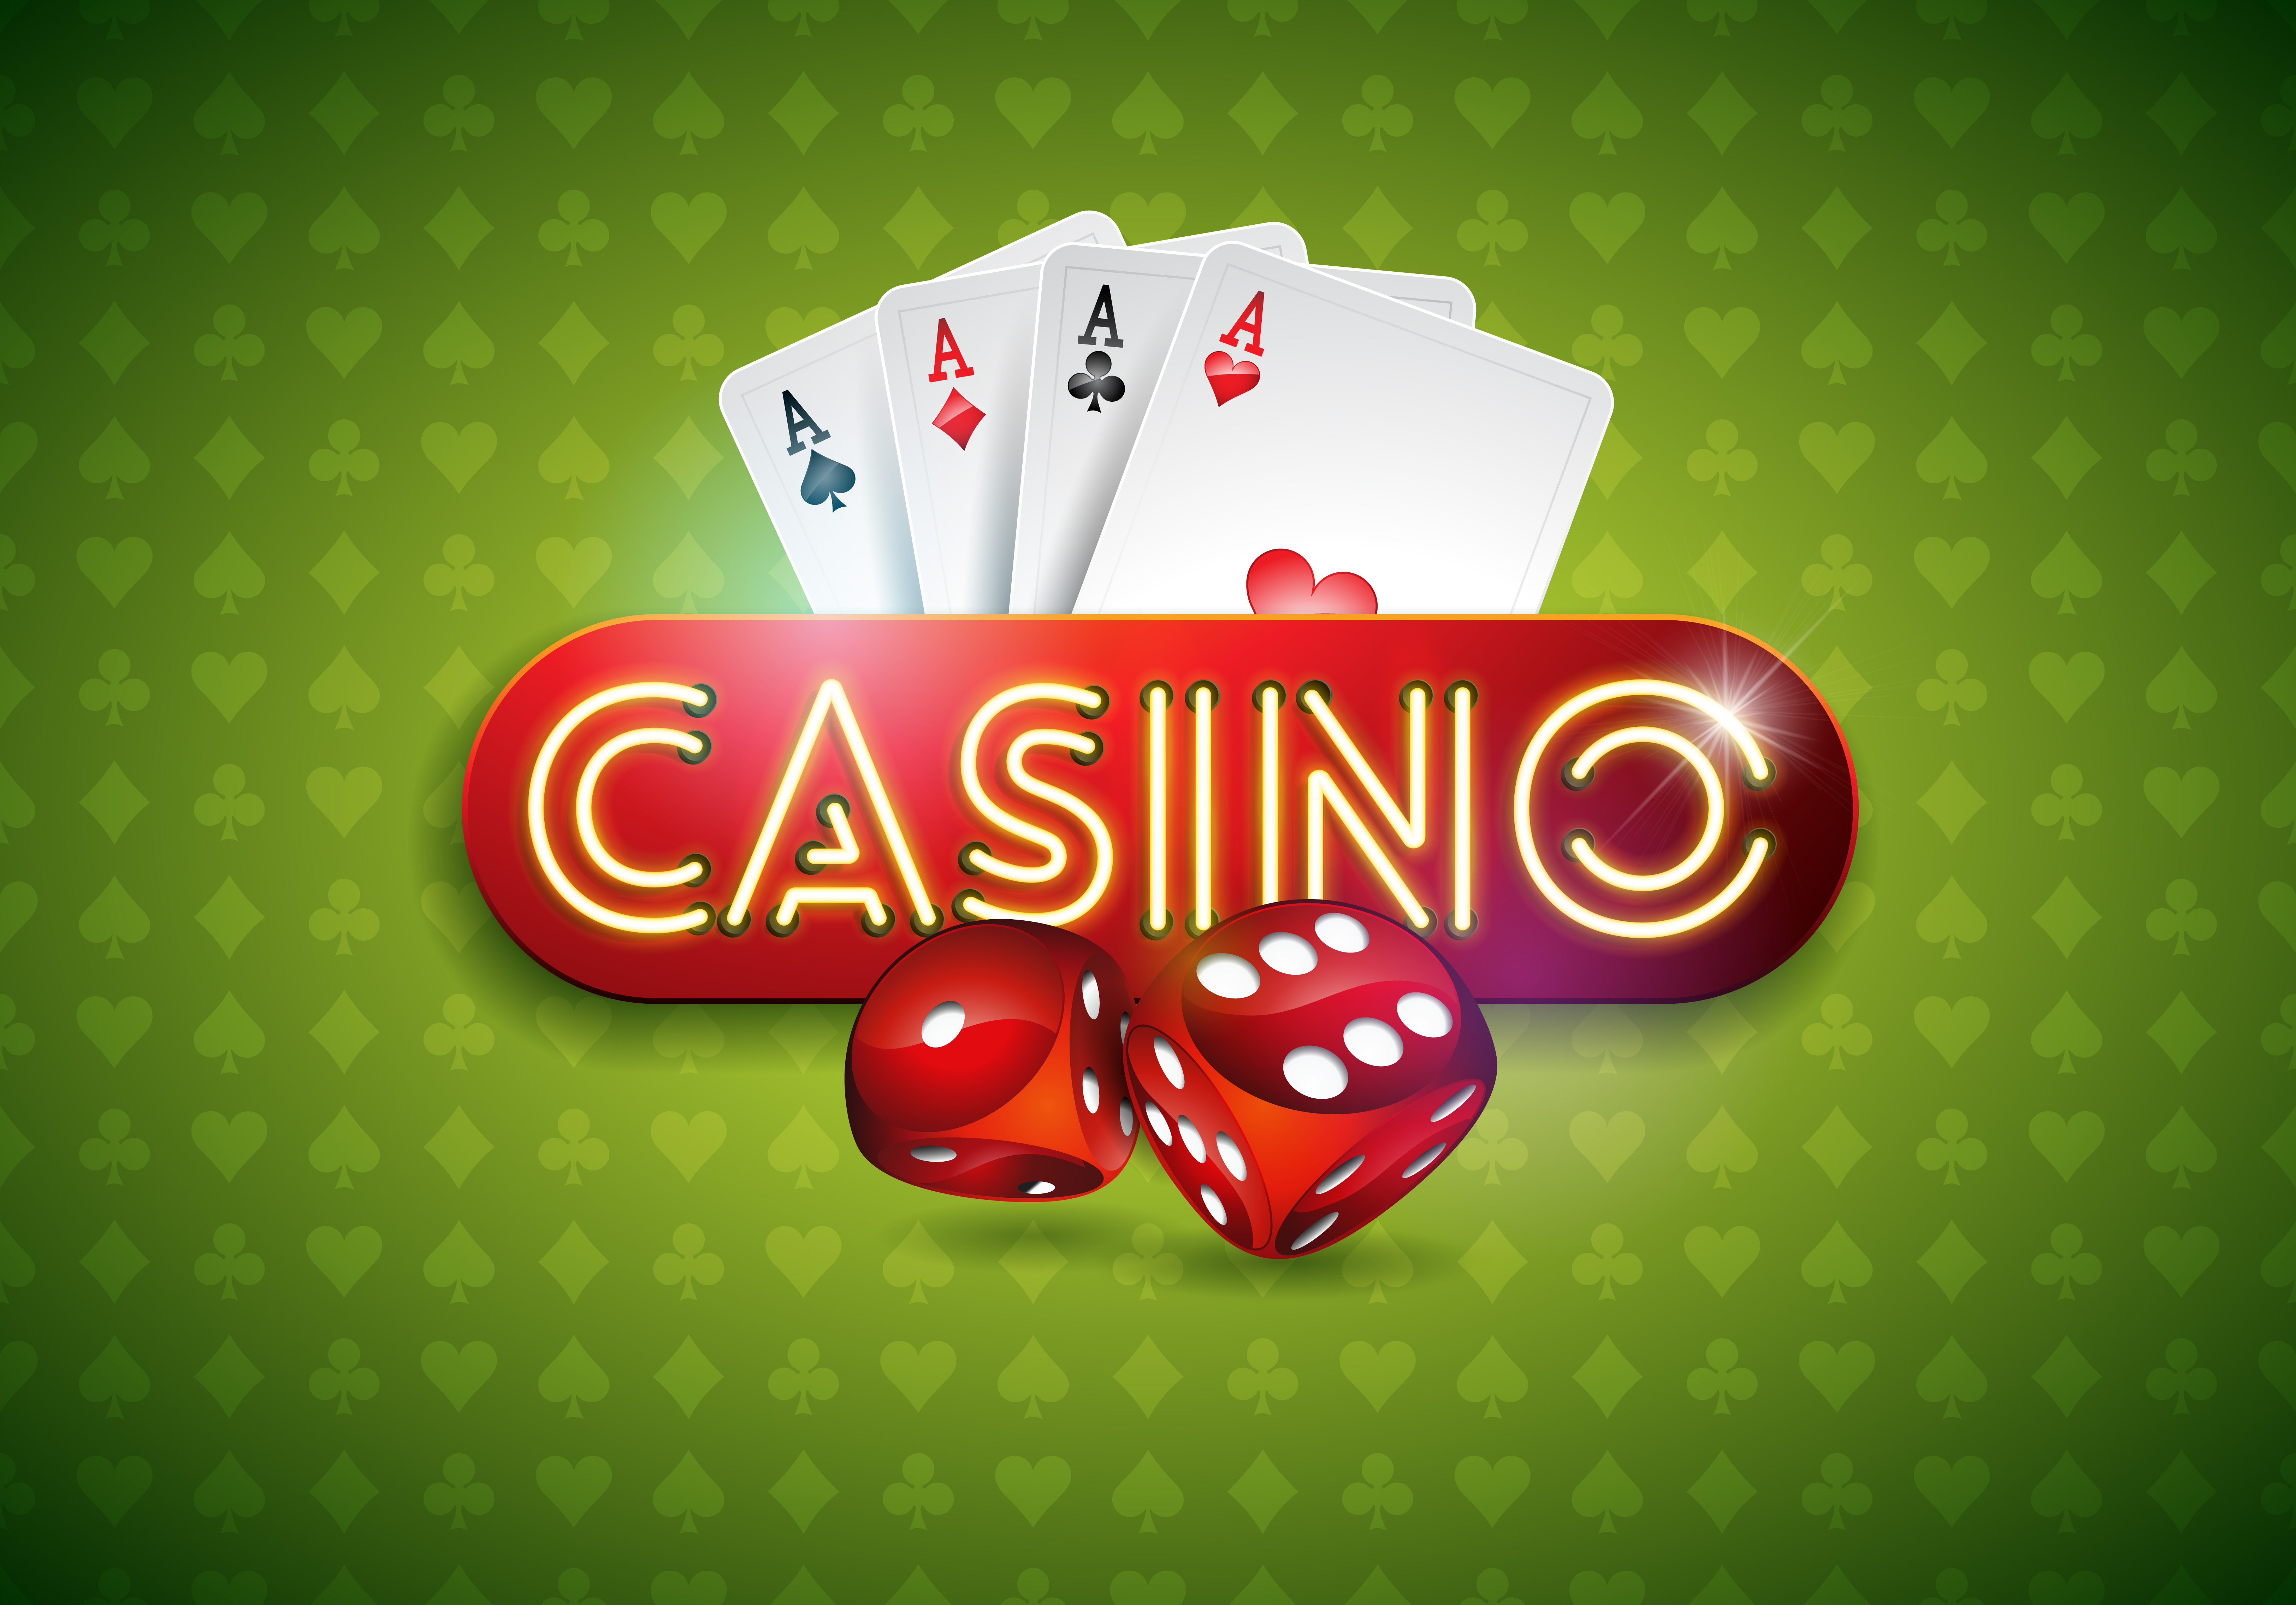 vector illustration on a casino theme with shiny neon